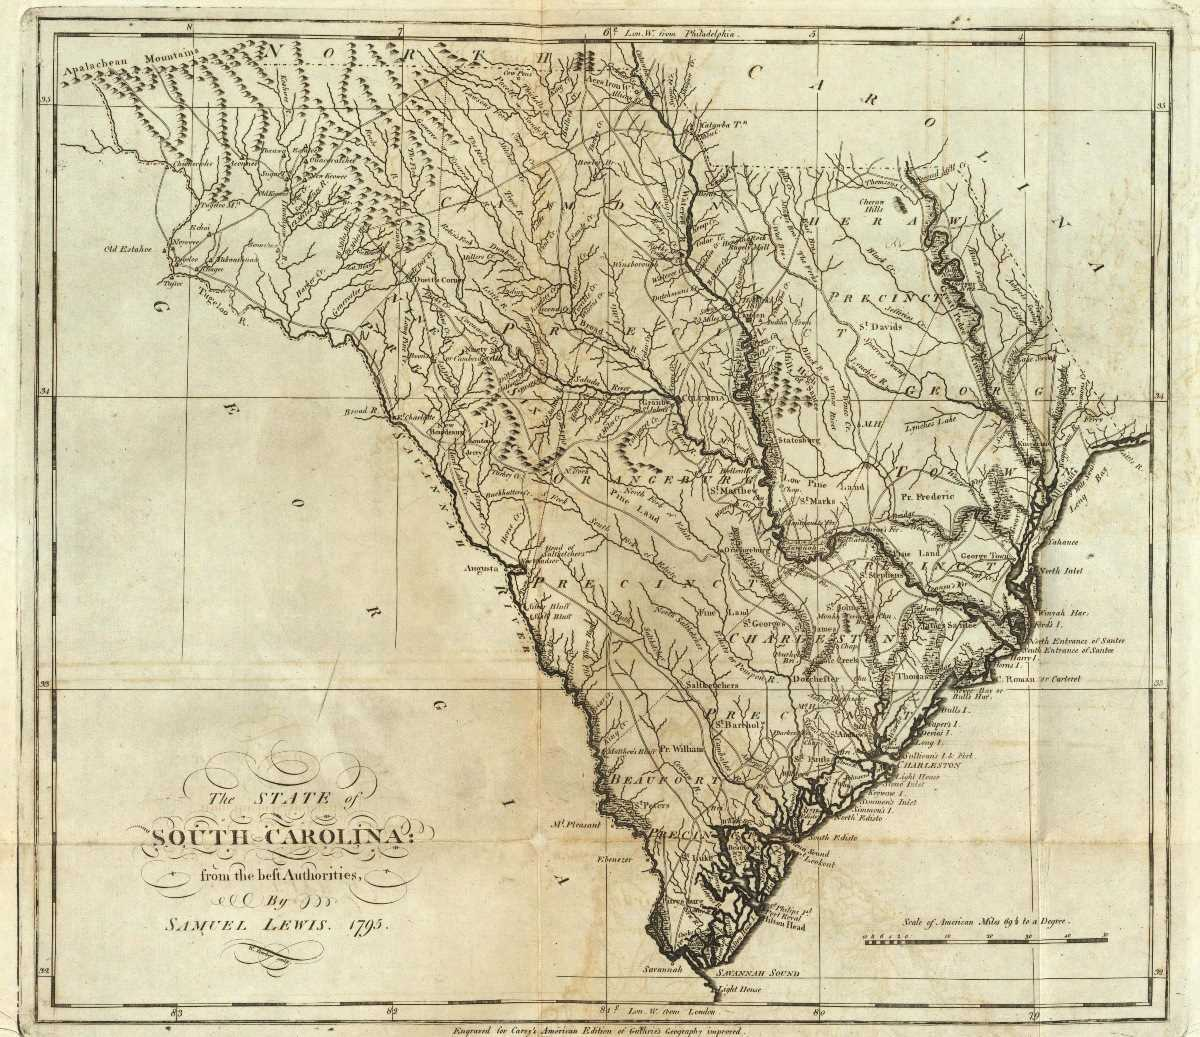 South Carolina map, ca. 1795